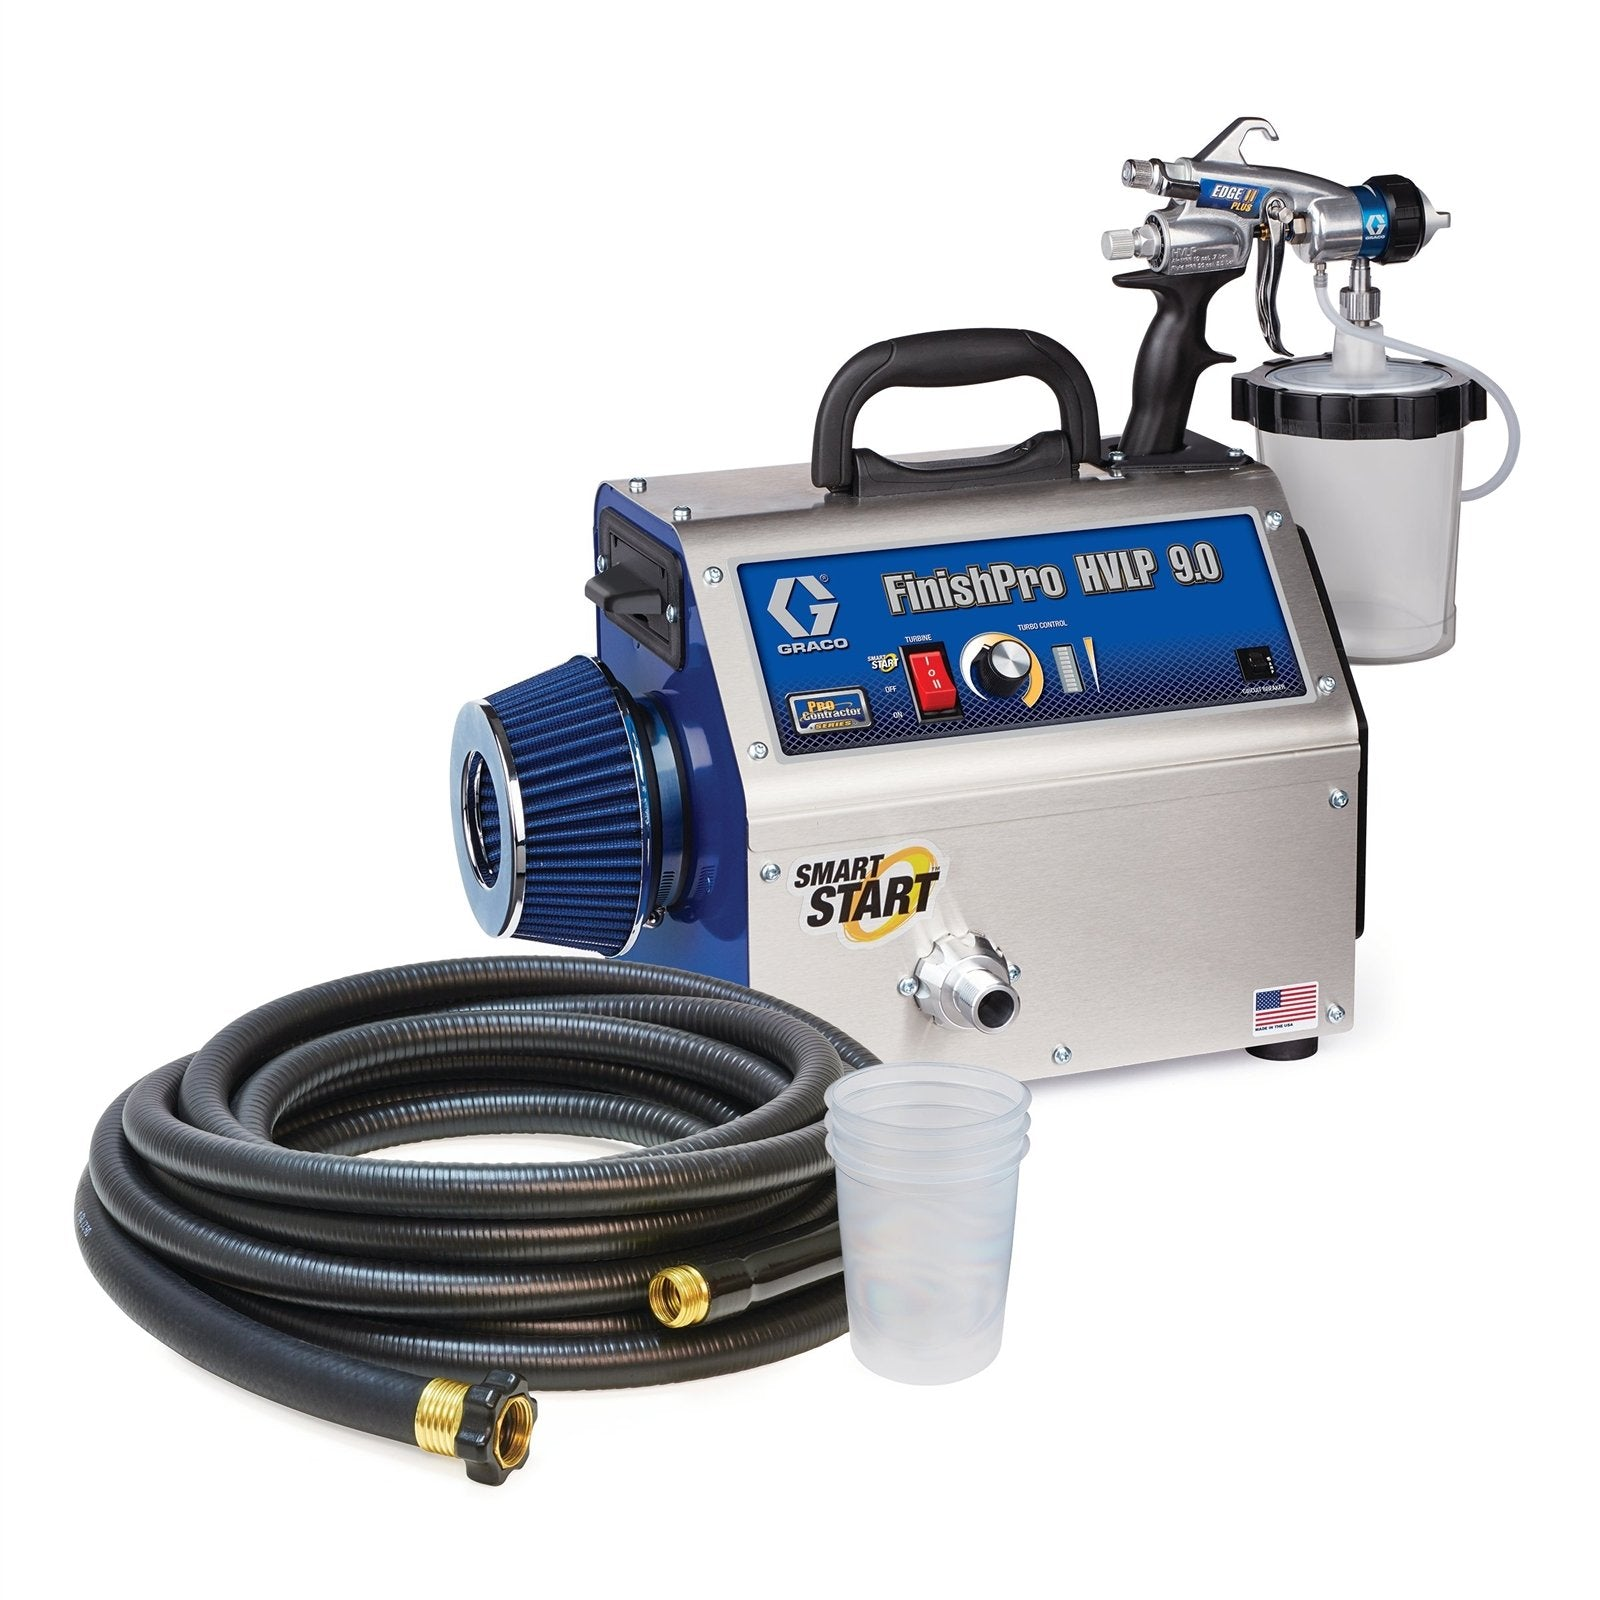 Graco 9.0 Pro Contractor HVLP Paint Sprayer, available at Aboff's in New York and Long Island.